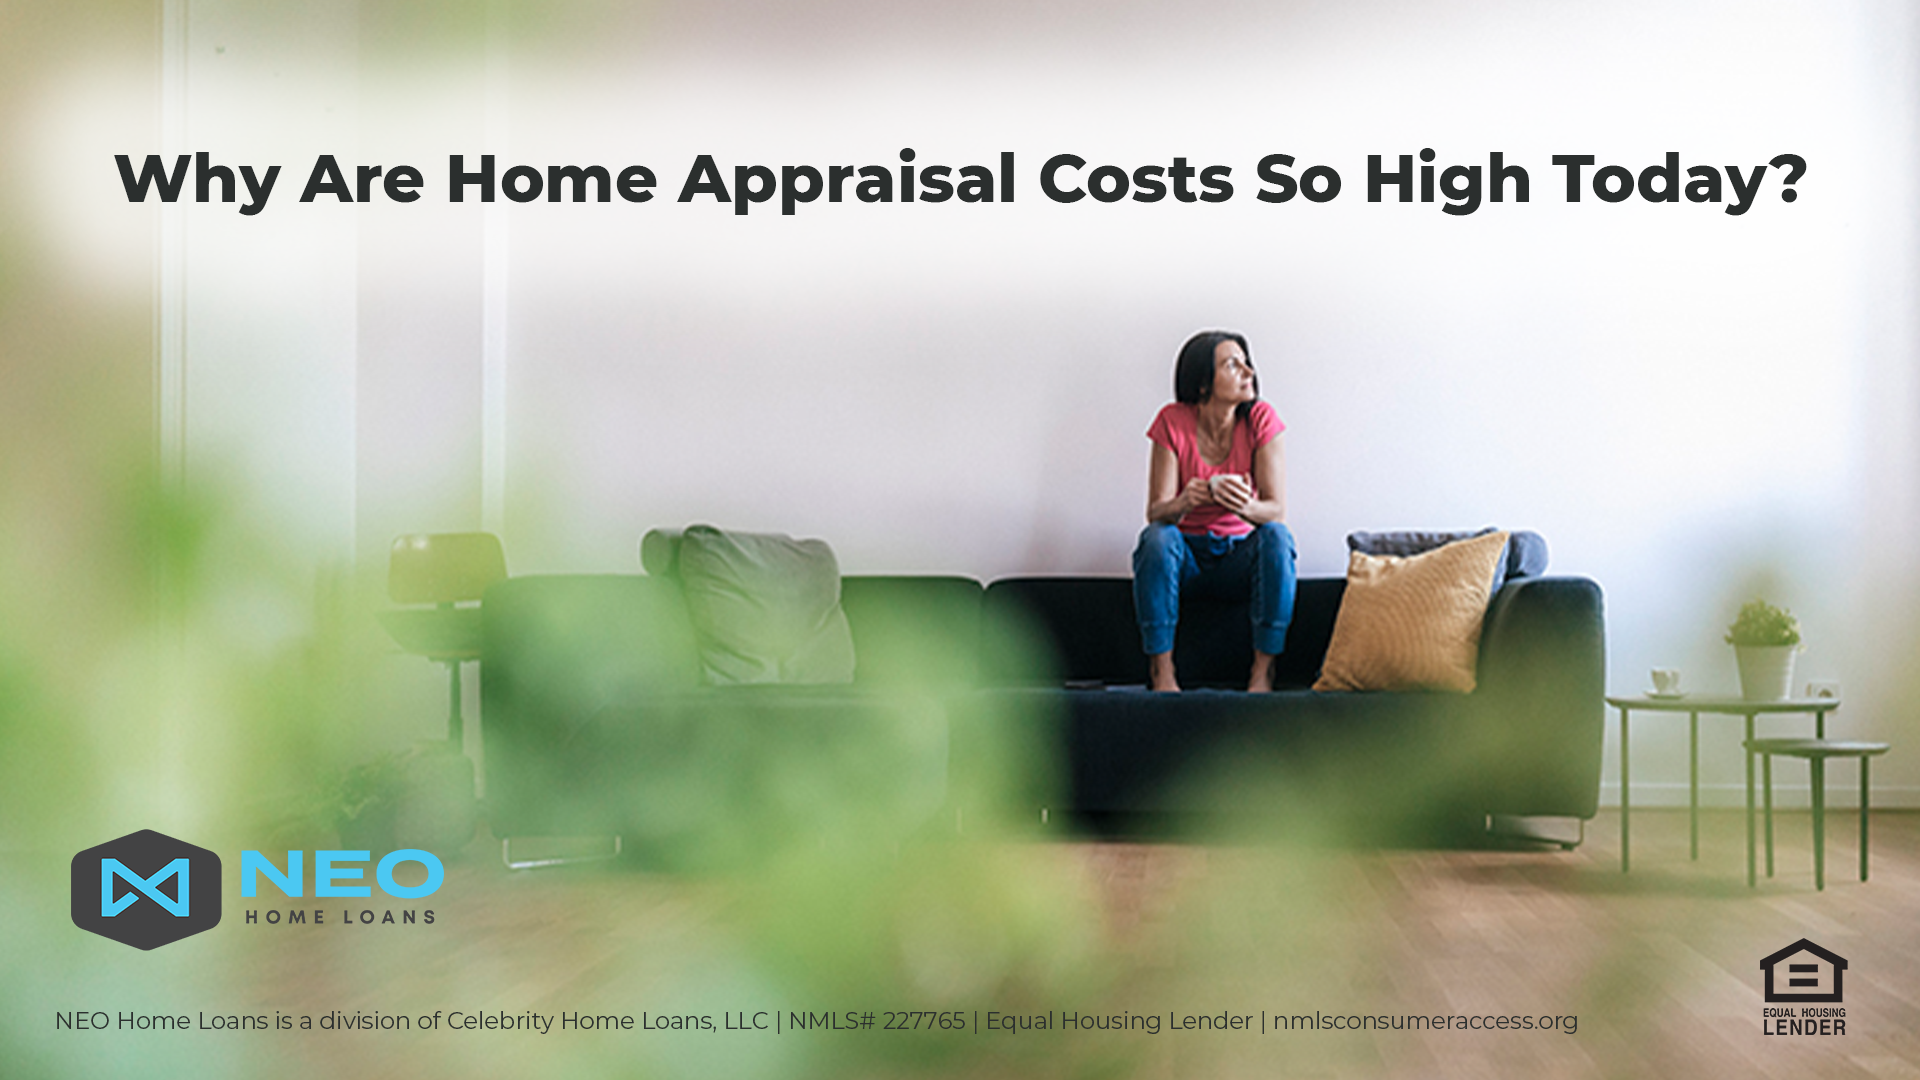 Why Are Home Appraisal Costs So High Today?